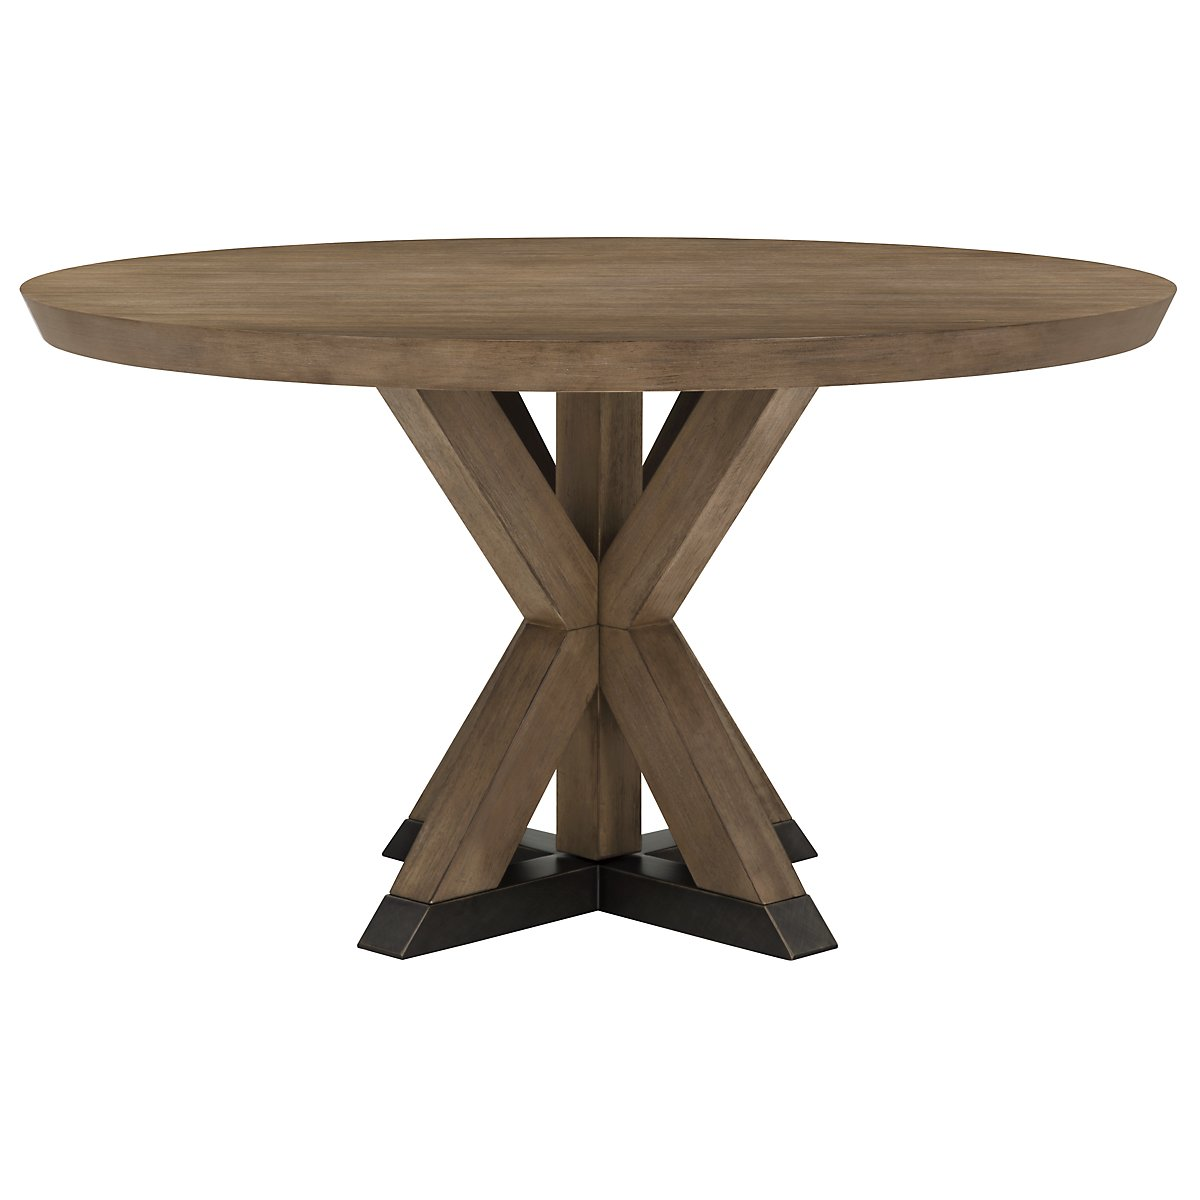 City furniture mirabelle light tone round table 4 wood for Wood round dining table for 4